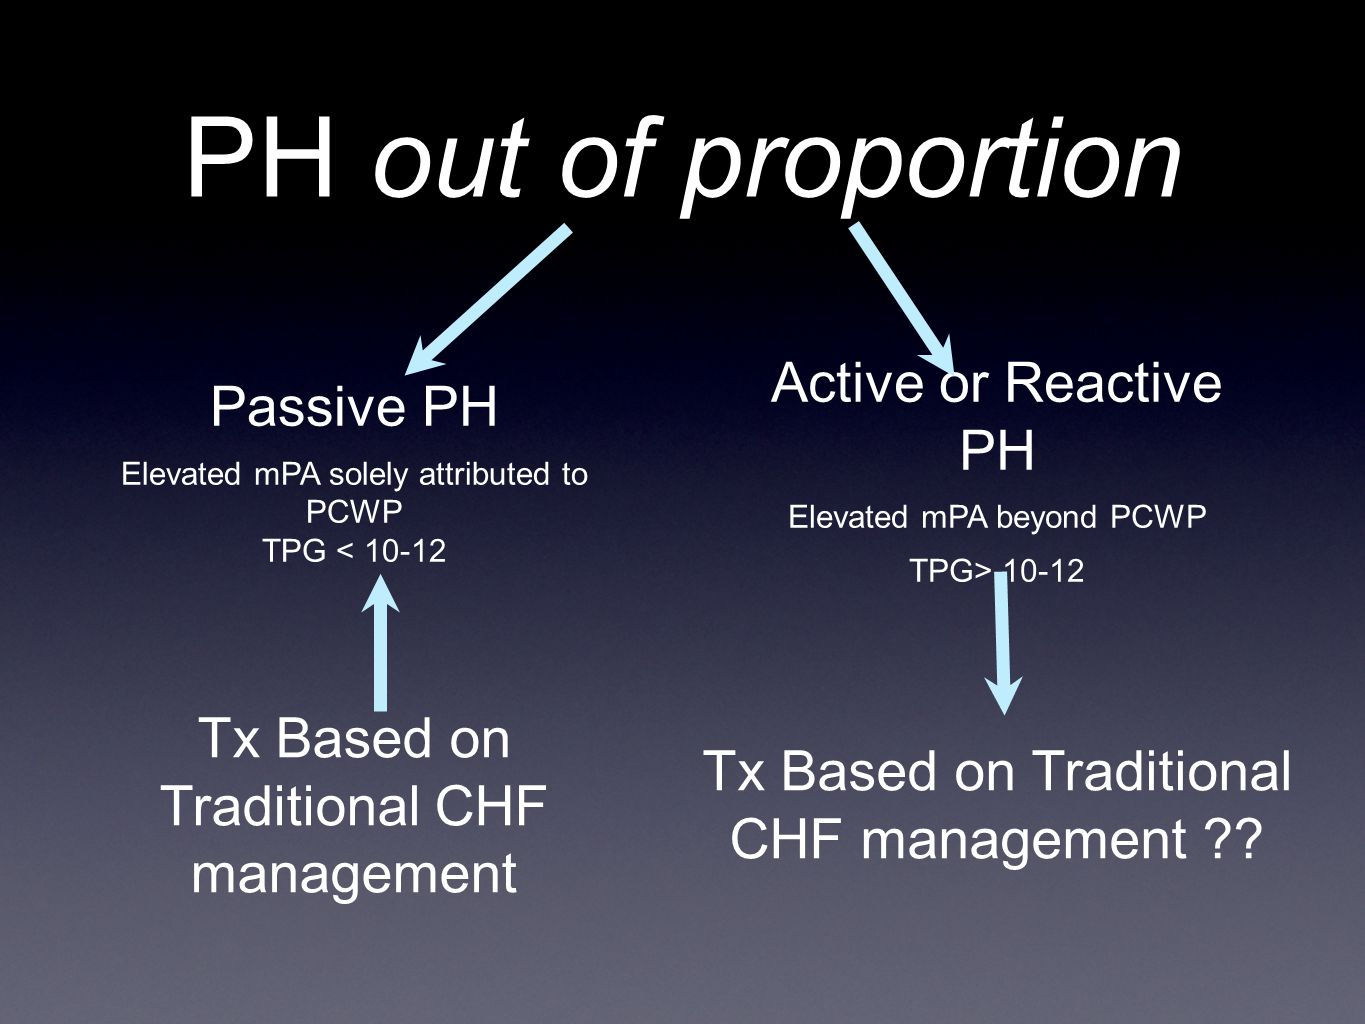 PH out of proportion Active or Reactive PH Passive PH